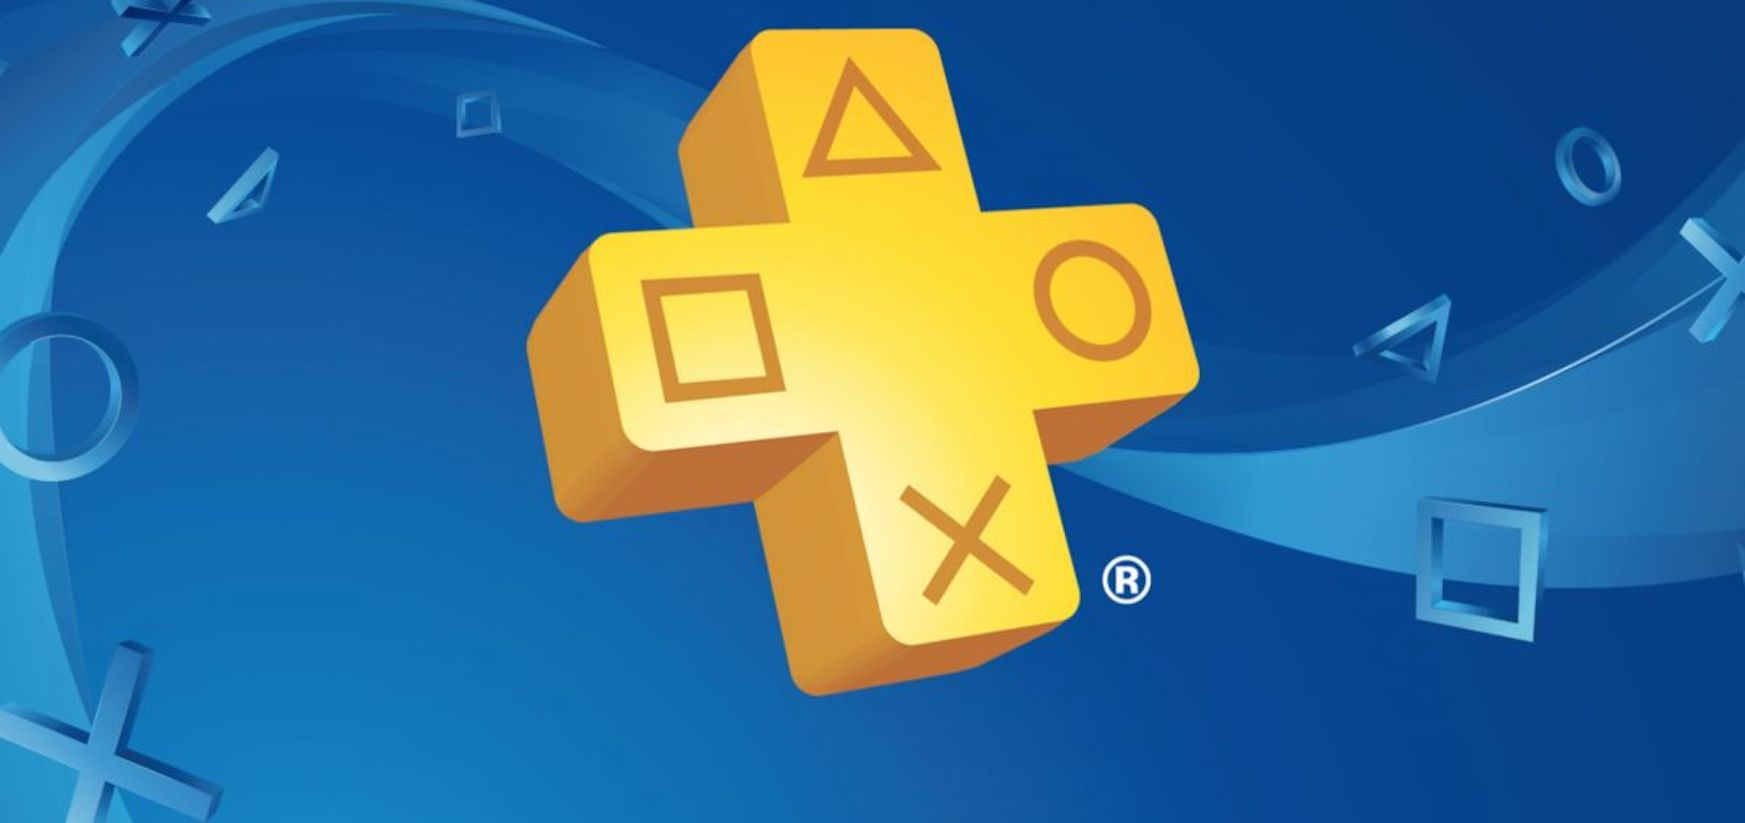 ps plus playstation 4 promocja na abonament ps4